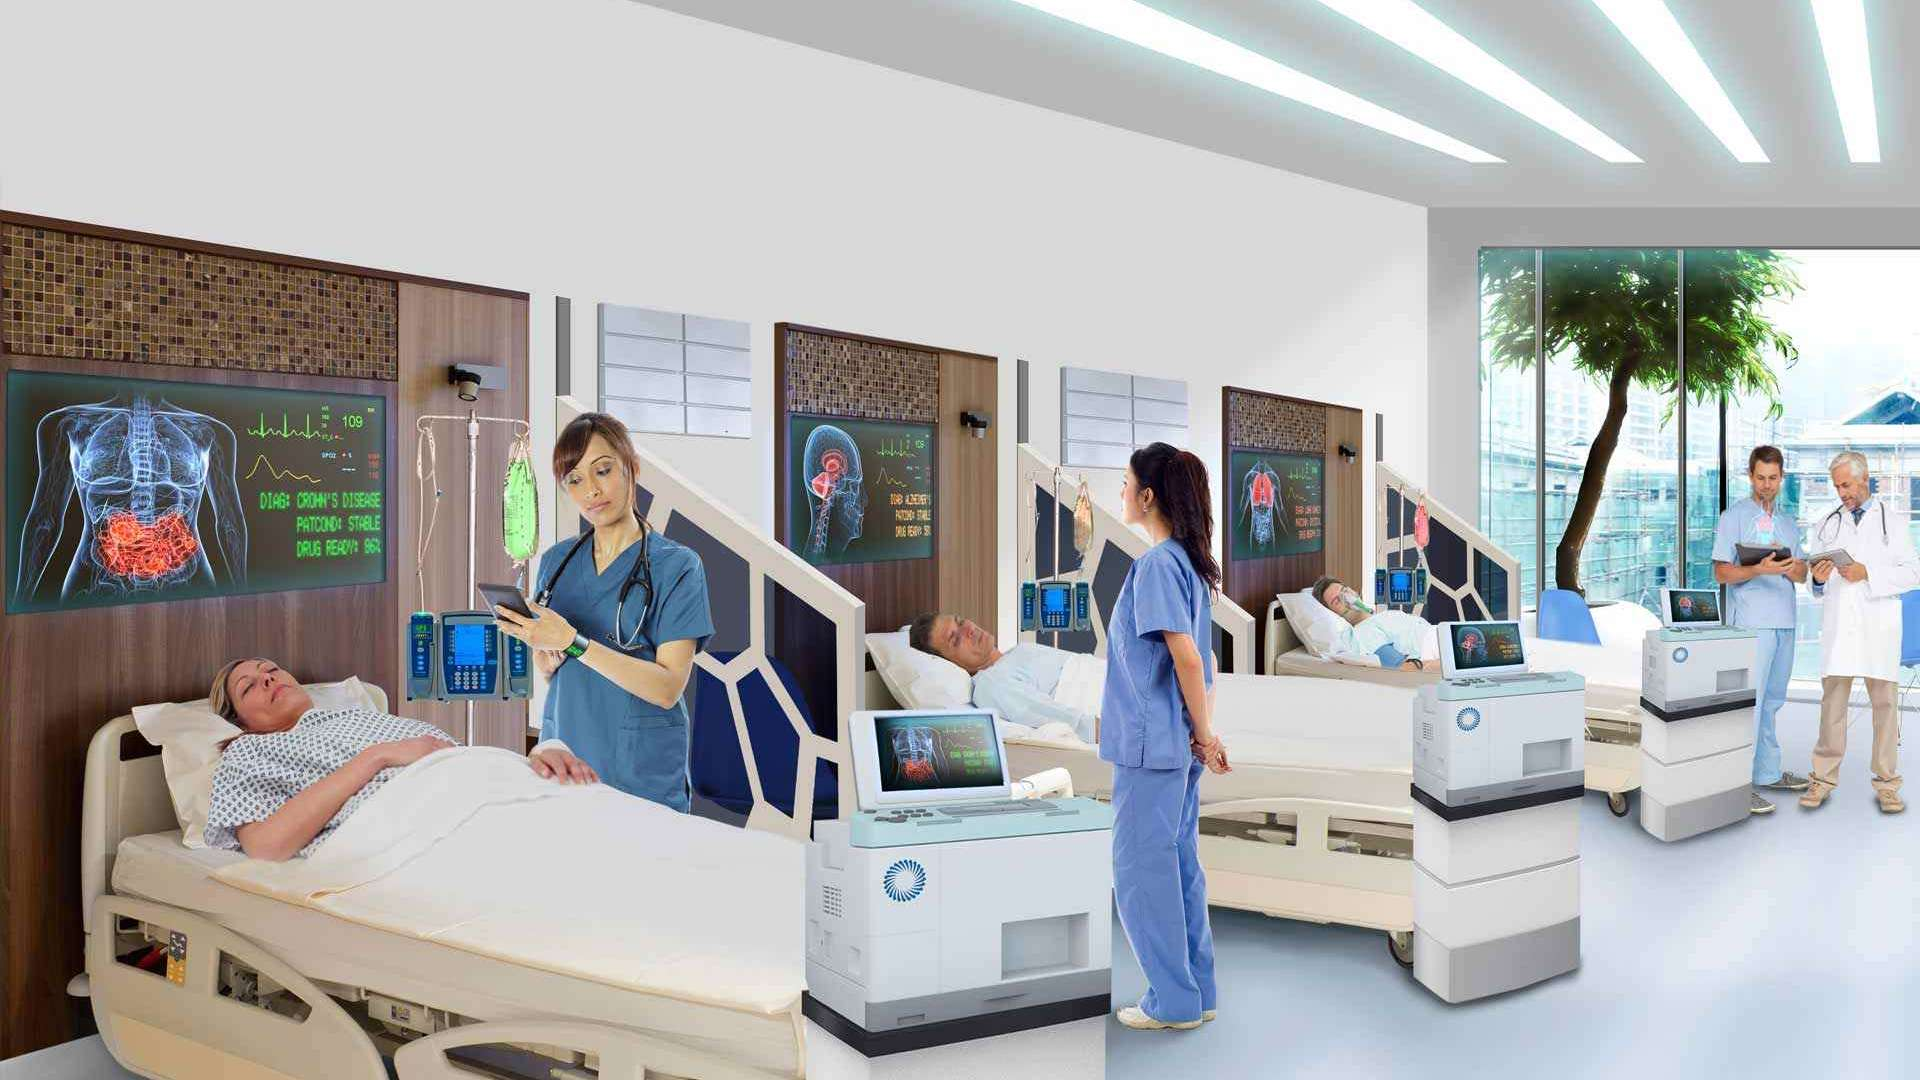 Digital technology offers a wealth of benefits for the world's healthcare systems